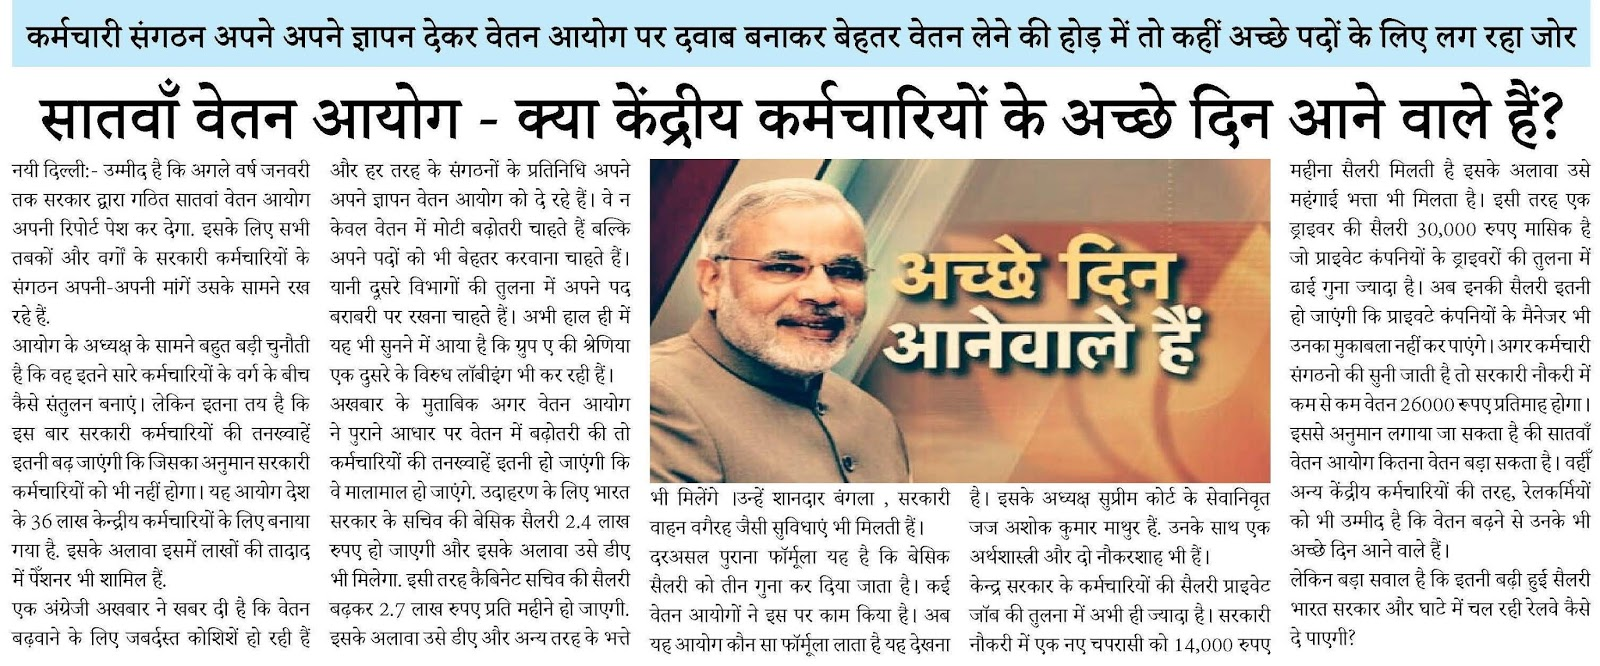 central government employees news in hindi - india news